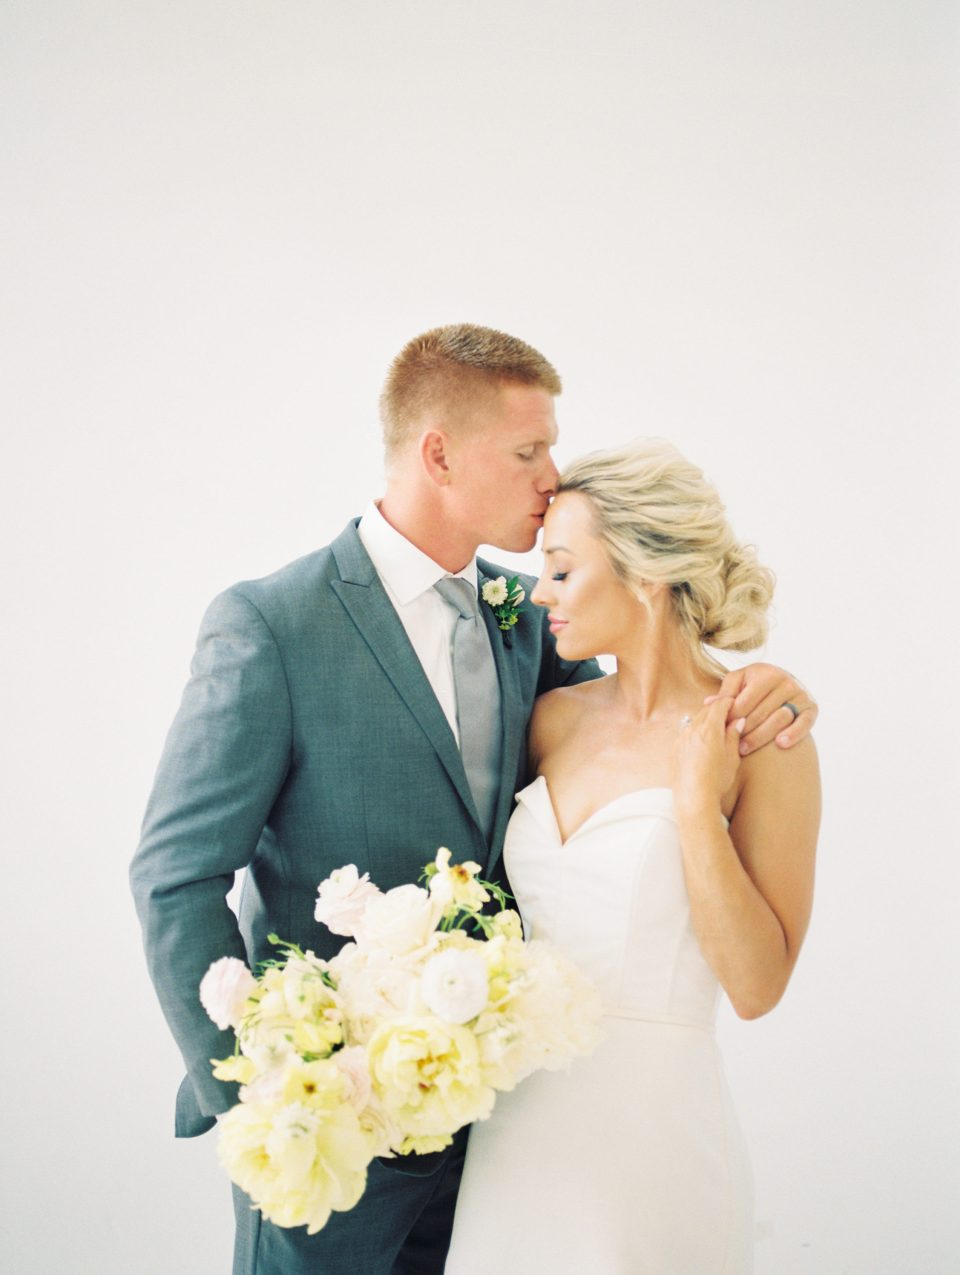 Clayton on the Park, Phoenix Wedding Photographer, Carte Blanche Flowers, Scottsdale Wedding, Clayton House